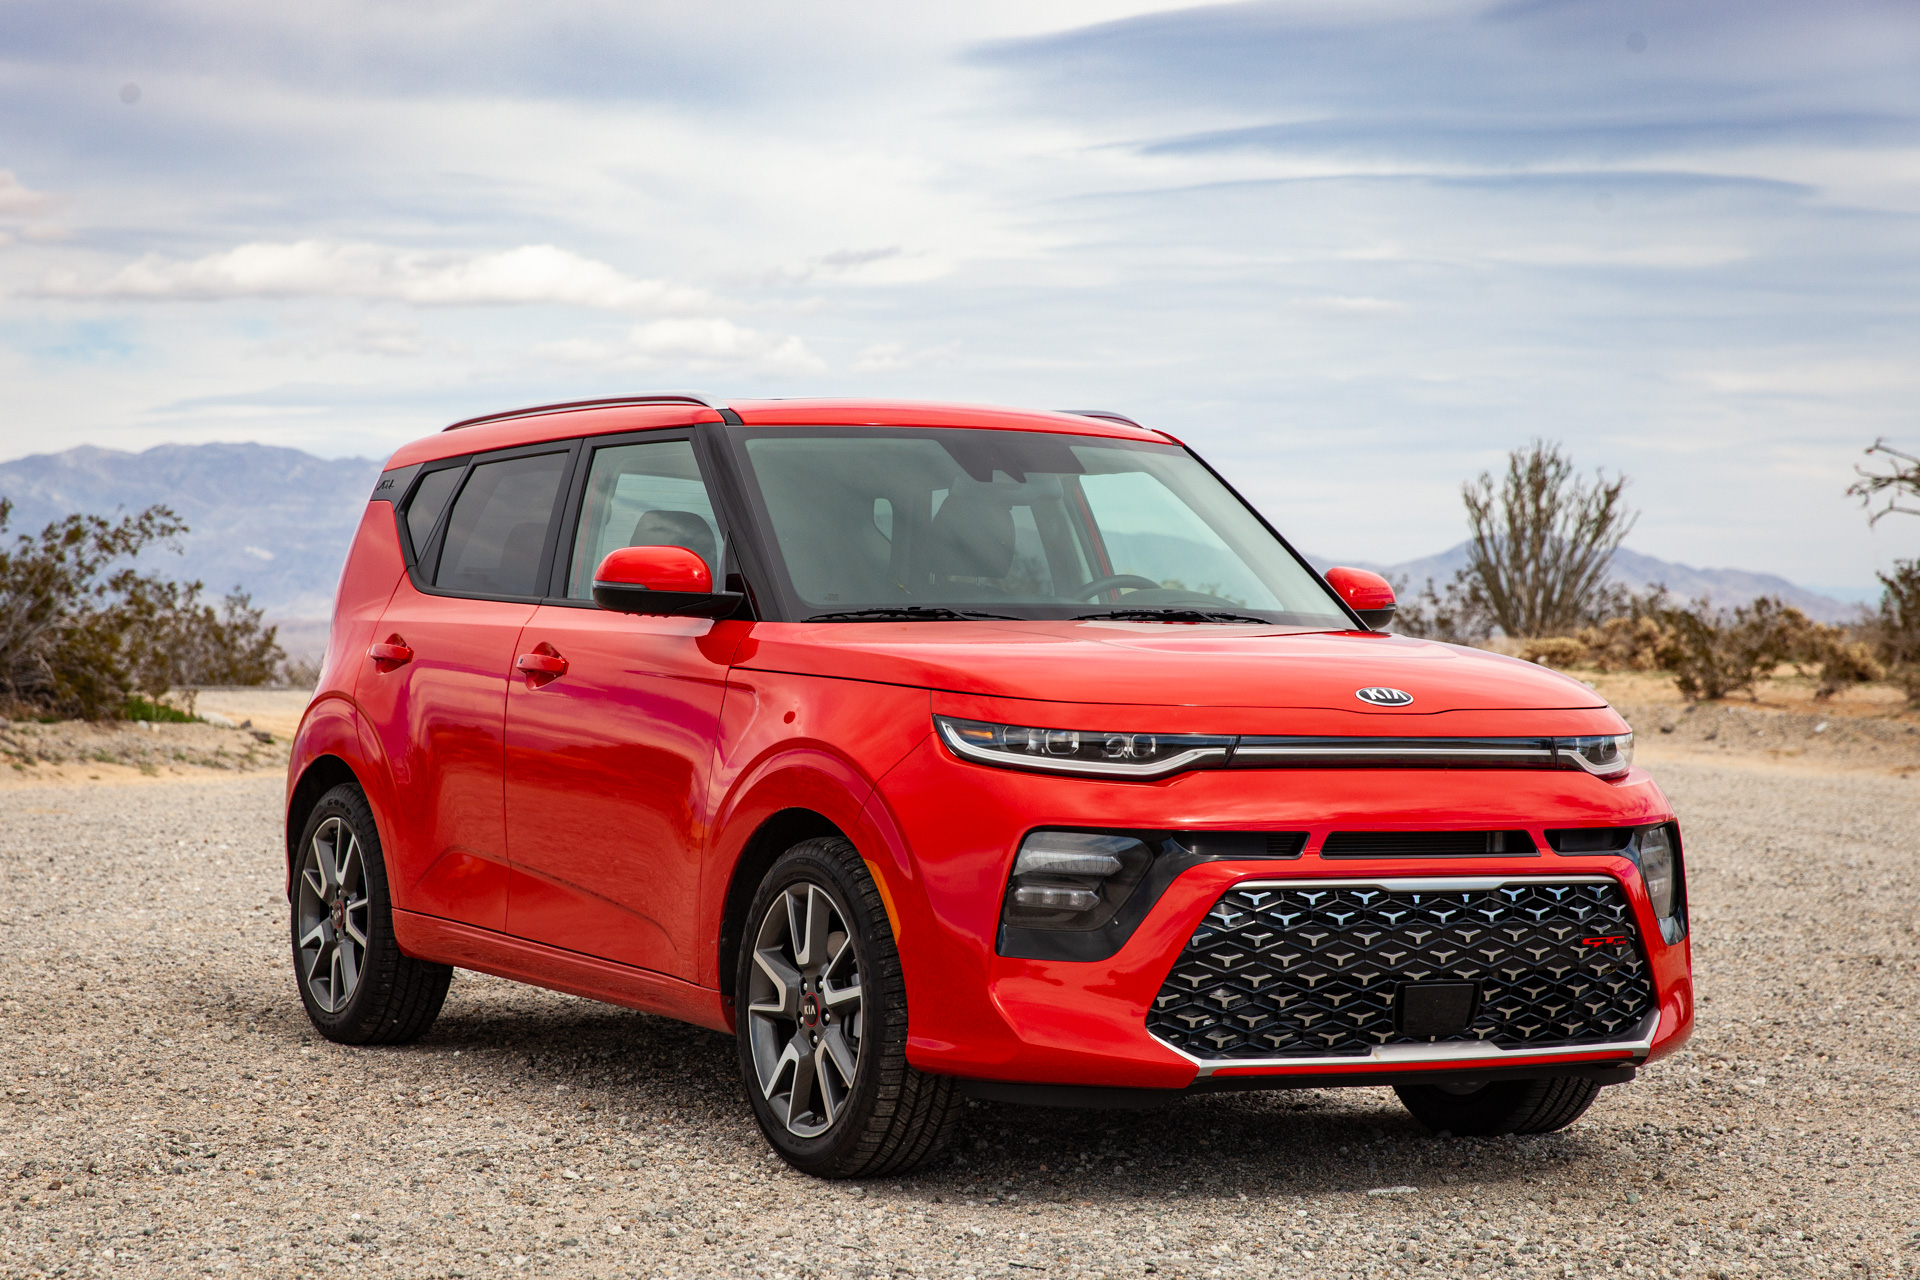 2020 Kia Soul hatchback costs $18,485 to start; perky turbo costs $28,485